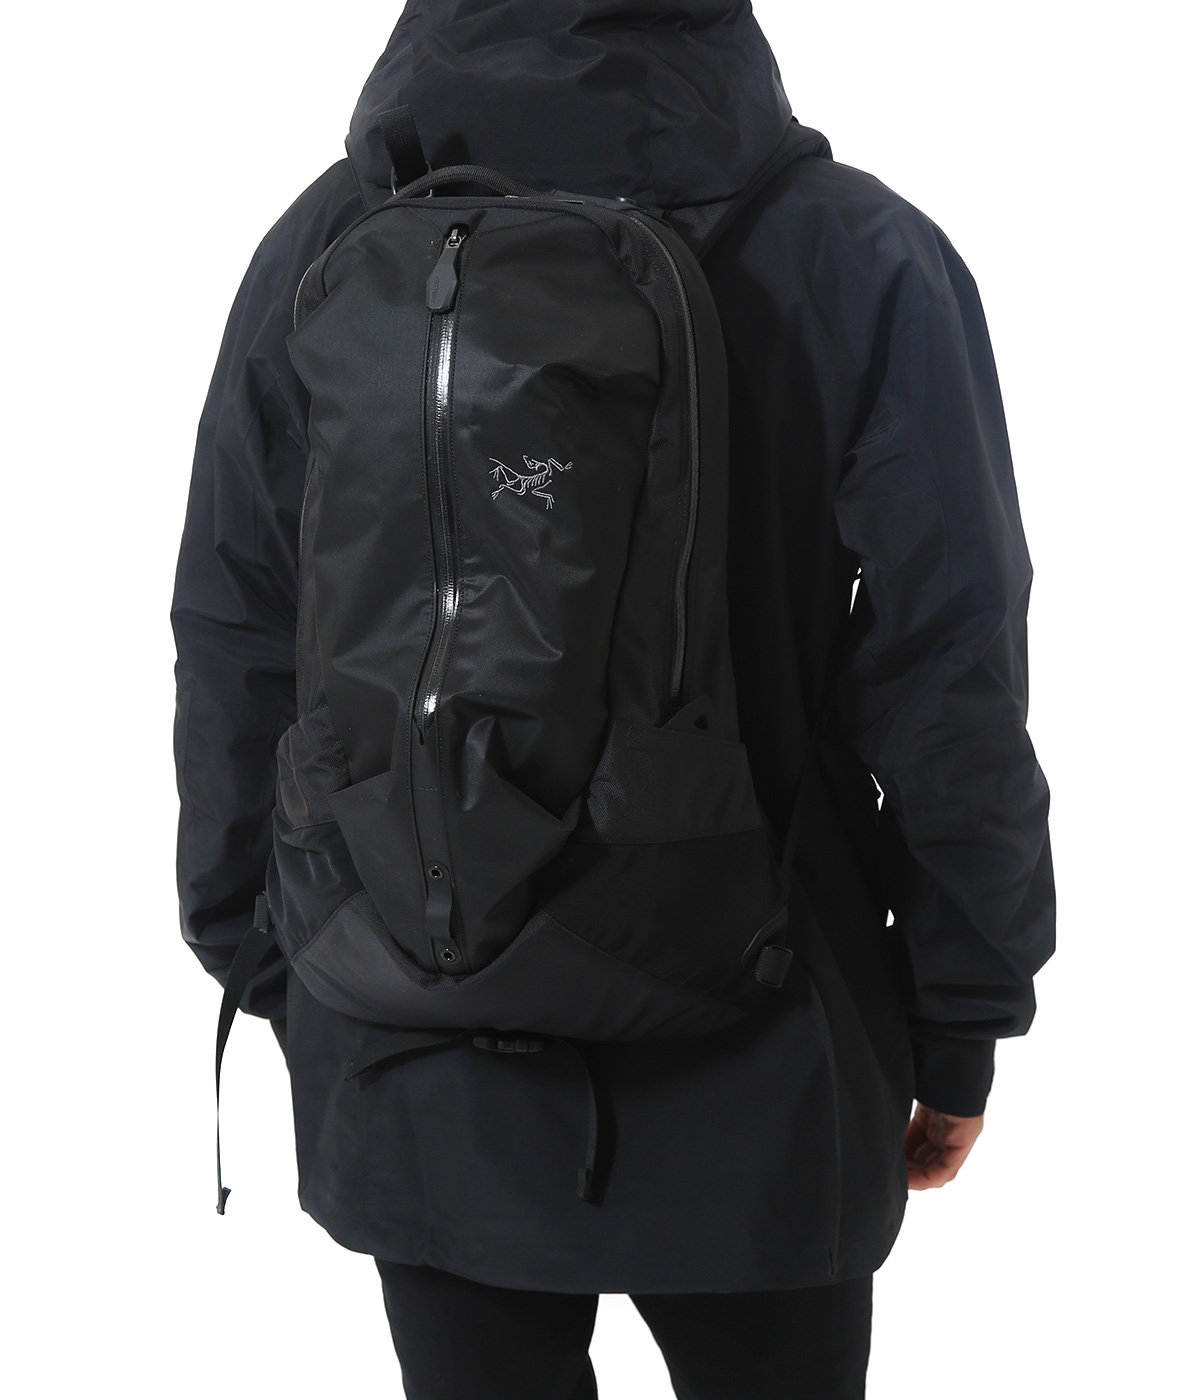 Arro 22 Backpack